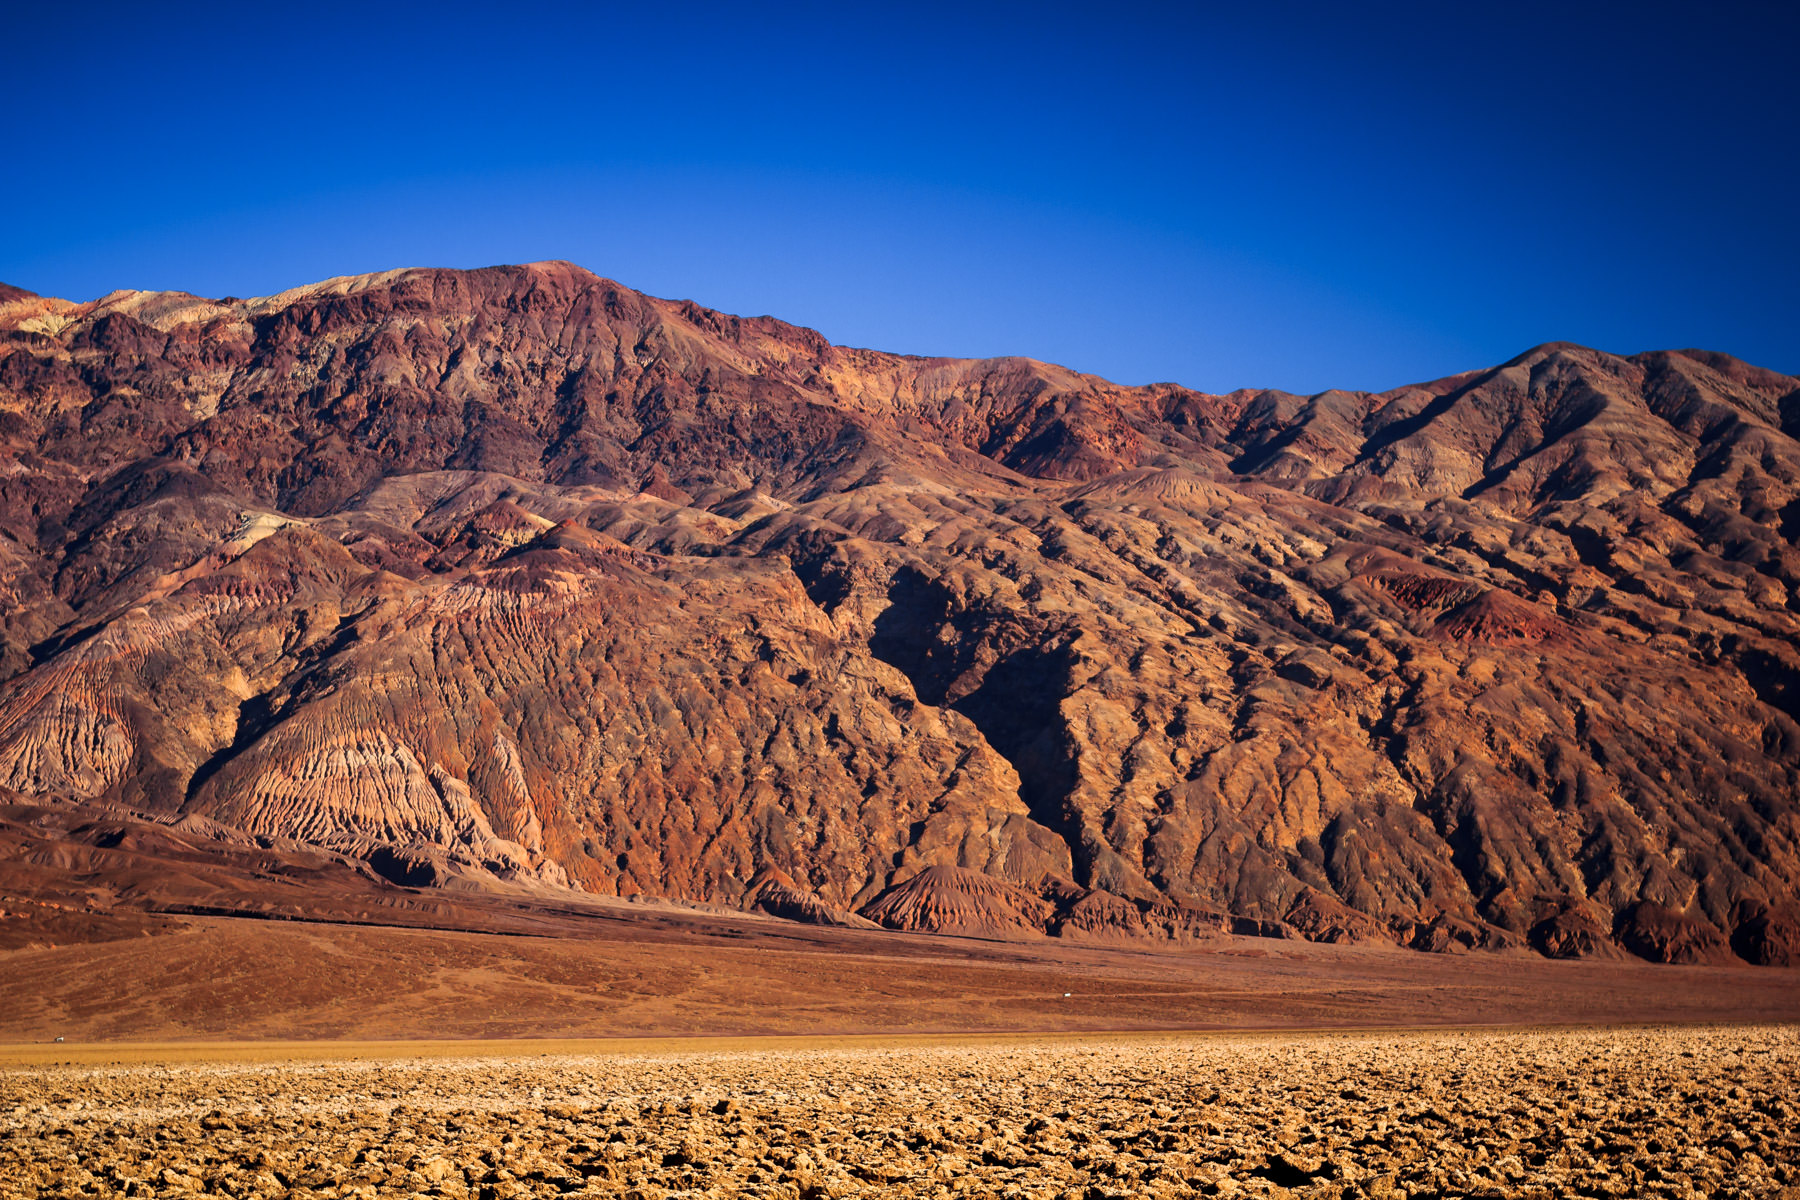 Mountains frame the desert landscape of Death Valley National Park, California.